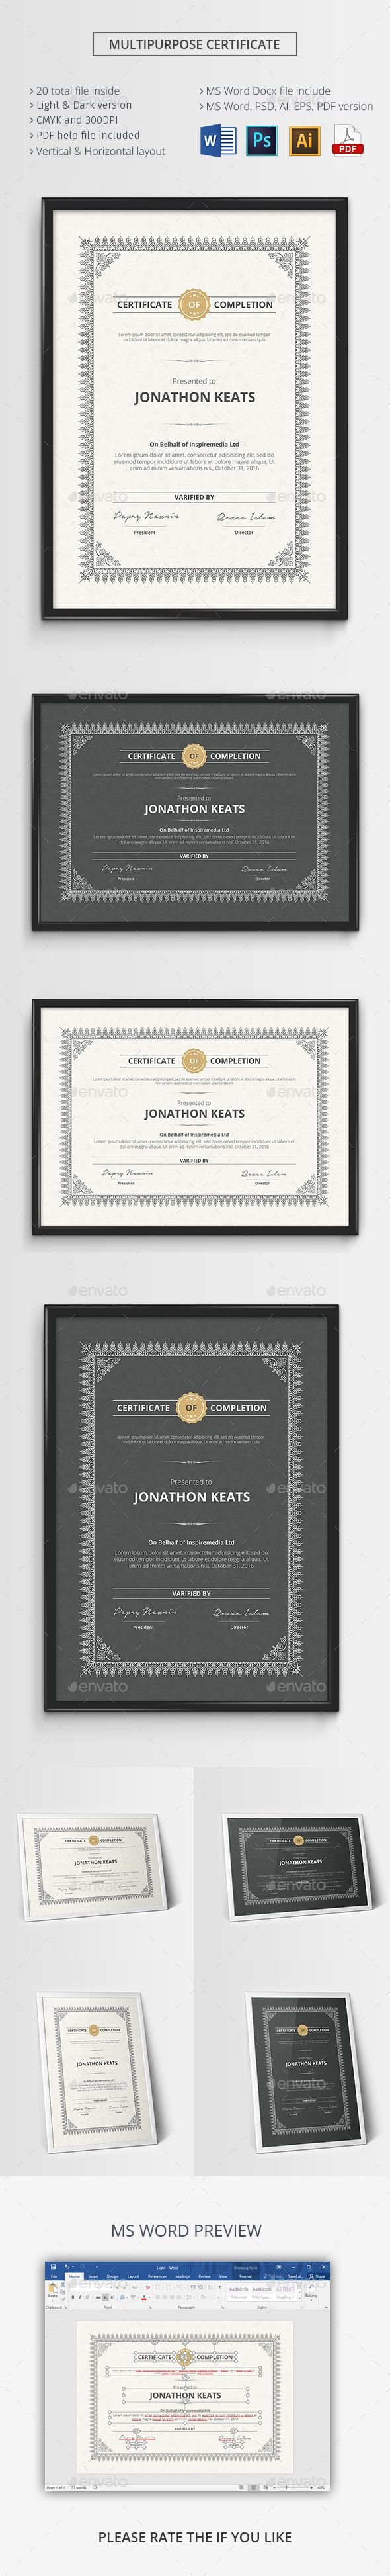 31 best psd templates certificate design images on pinterest psd multipurpose certificate template psd vector eps ai illustrator ms word download here yadclub Choice Image